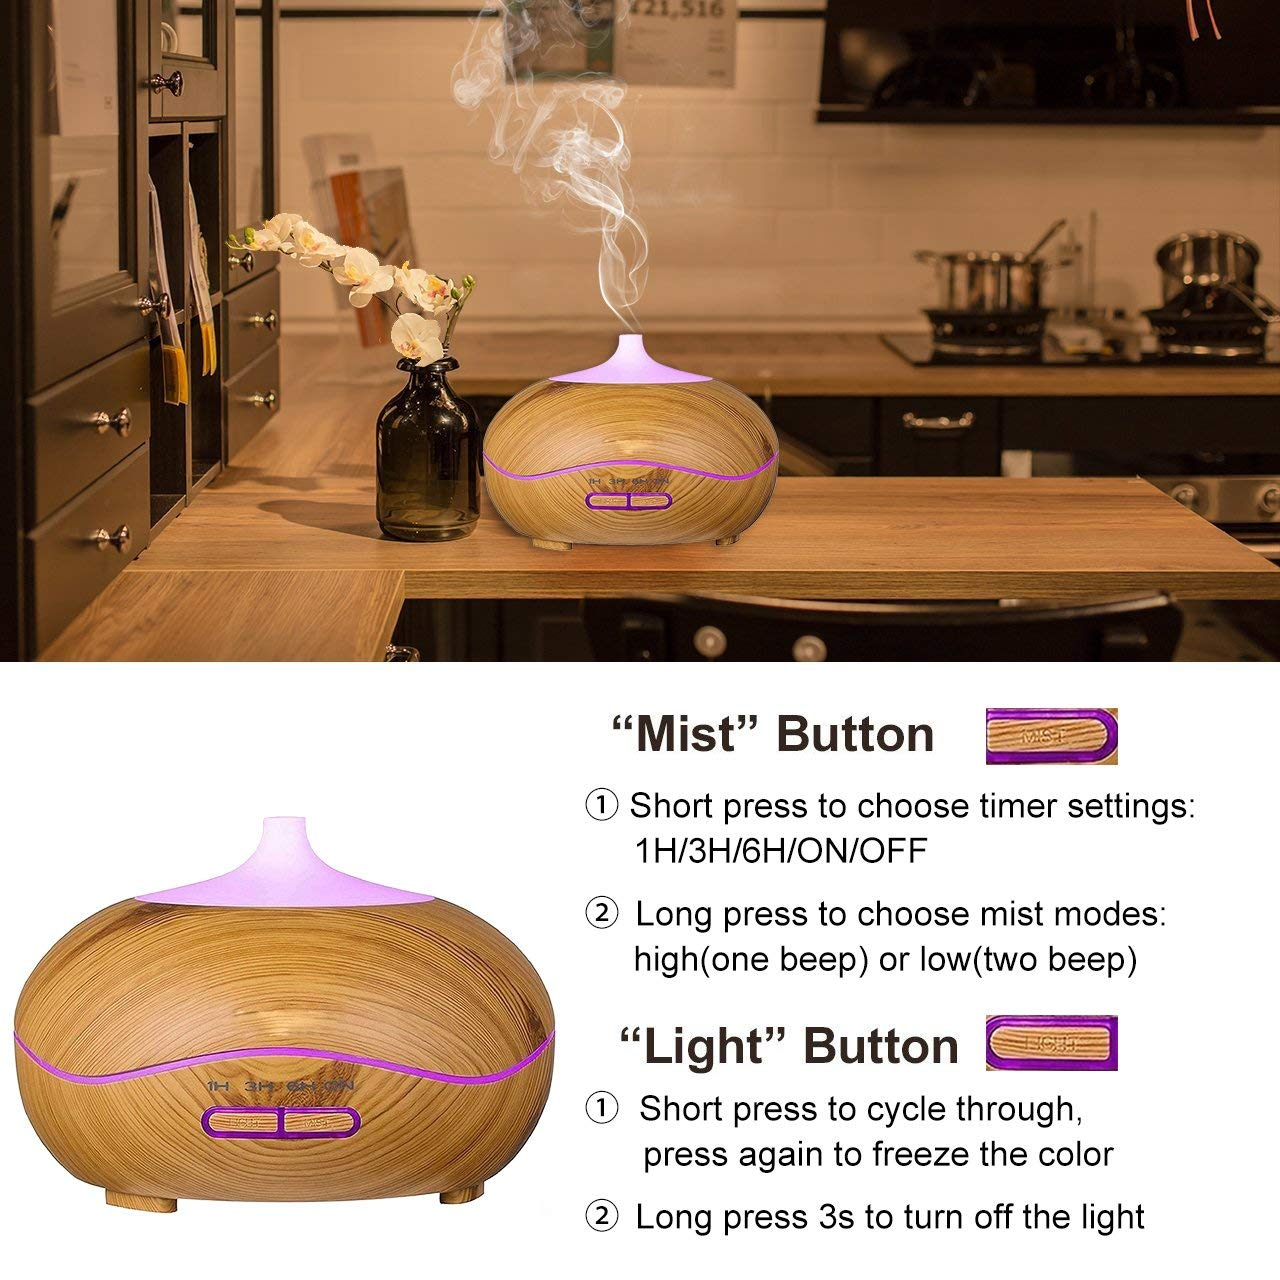 Cool Mist Ultrasonic Aroma Diffuser,7 Colour Changing LED Lights, Air Humidifier Wood Grain with Waterless Automatically Shut-off, for bedroom babyroom-WOOD …